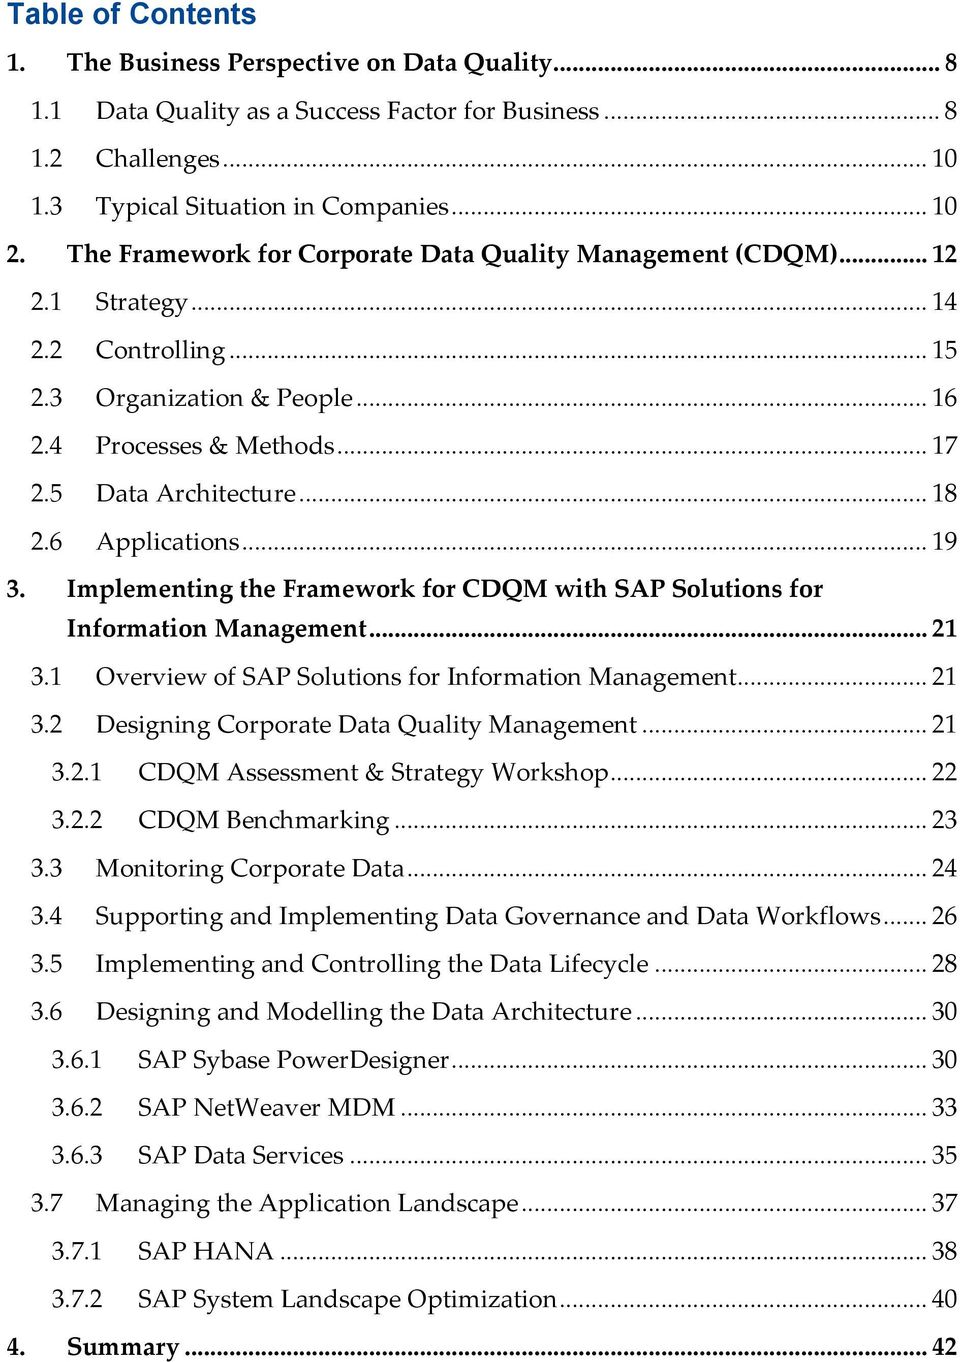 6 Applications... 19 3. Implementing the Framework for CDQM with SAP Solutions for Information Management... 21 3.1 Overview of SAP Solutions for Information Management... 21 3.2 Designing Corporate Data Quality Management.